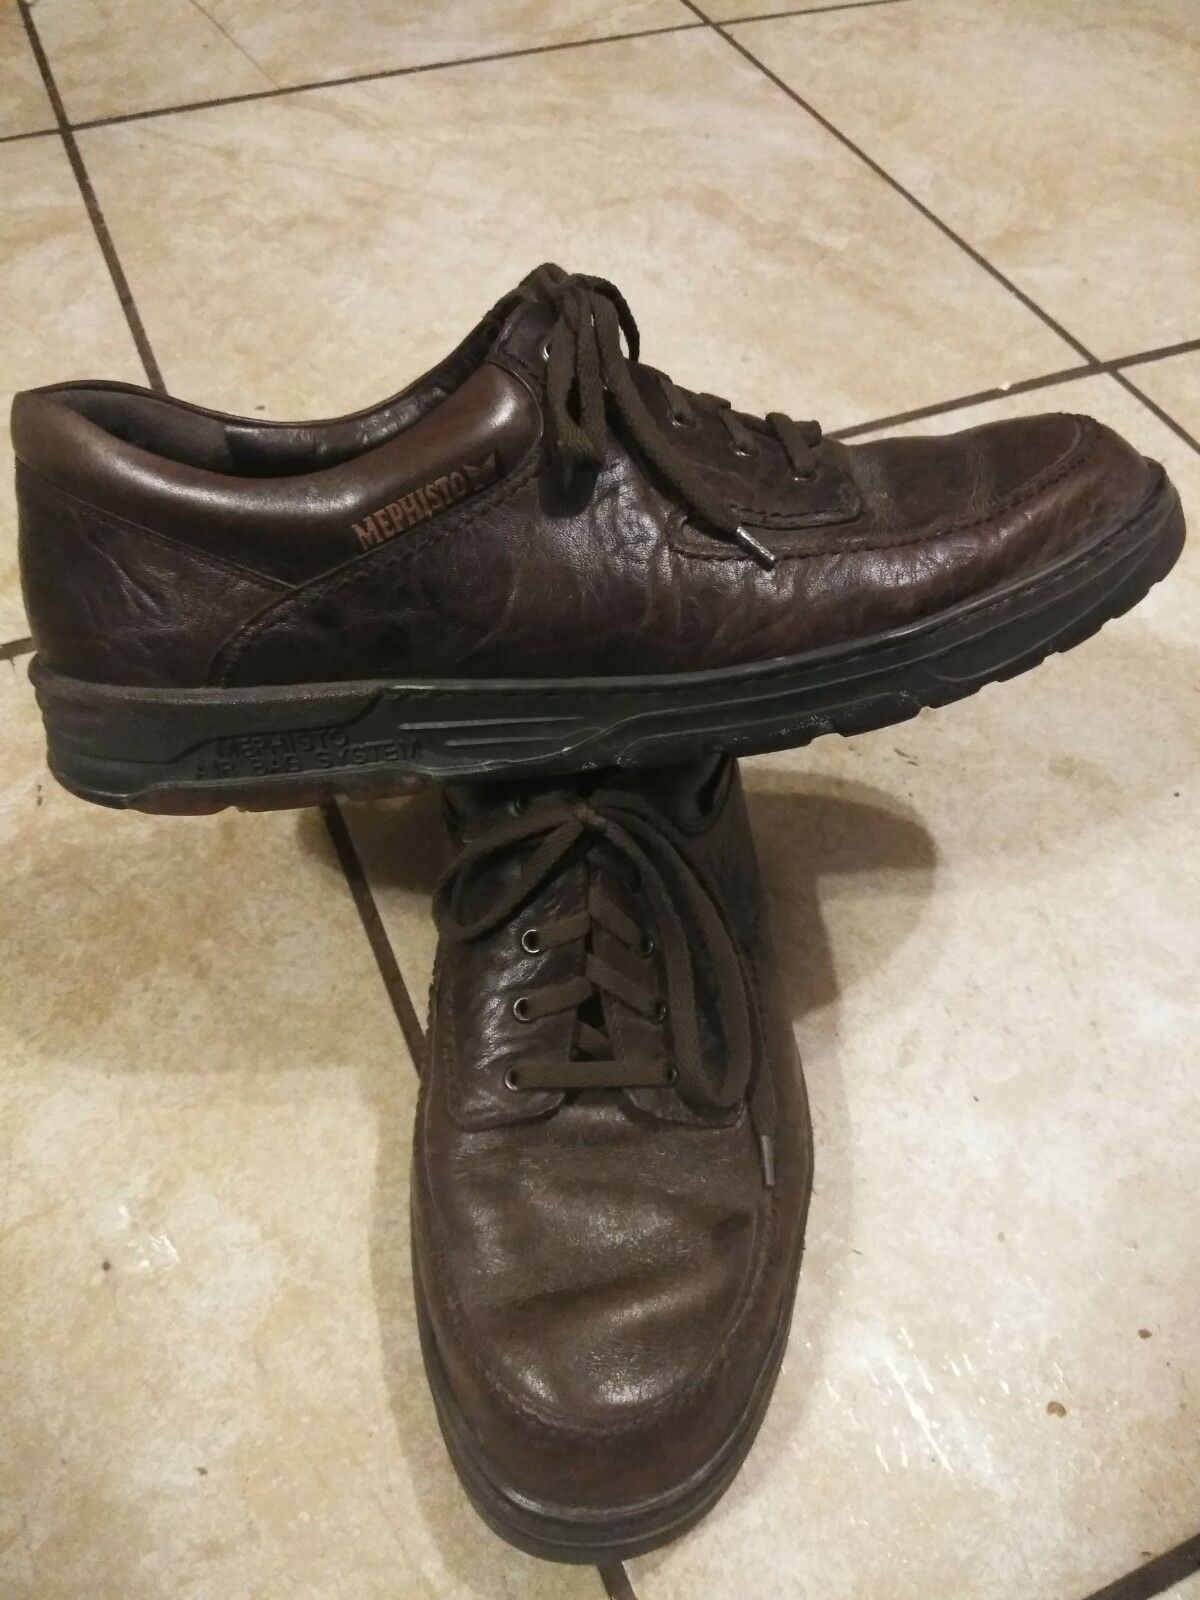 Mephisto Air Jet Jet Jet Men's Marroneee Leather Oxford Dimensione 13 24bf11